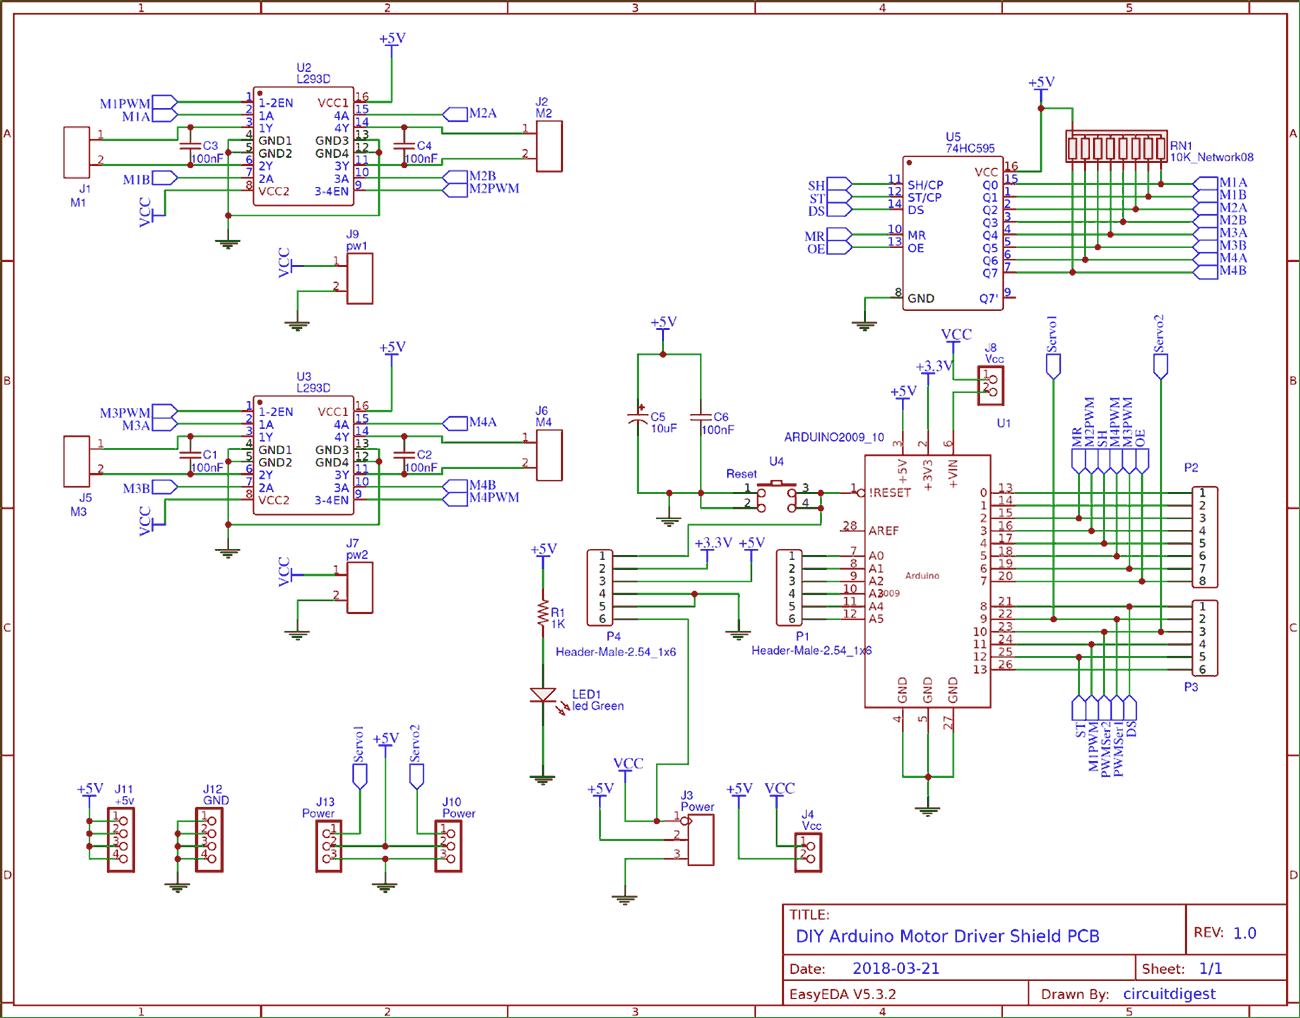 small resolution of circuit diagram for diy arduino motor driver shield pcb